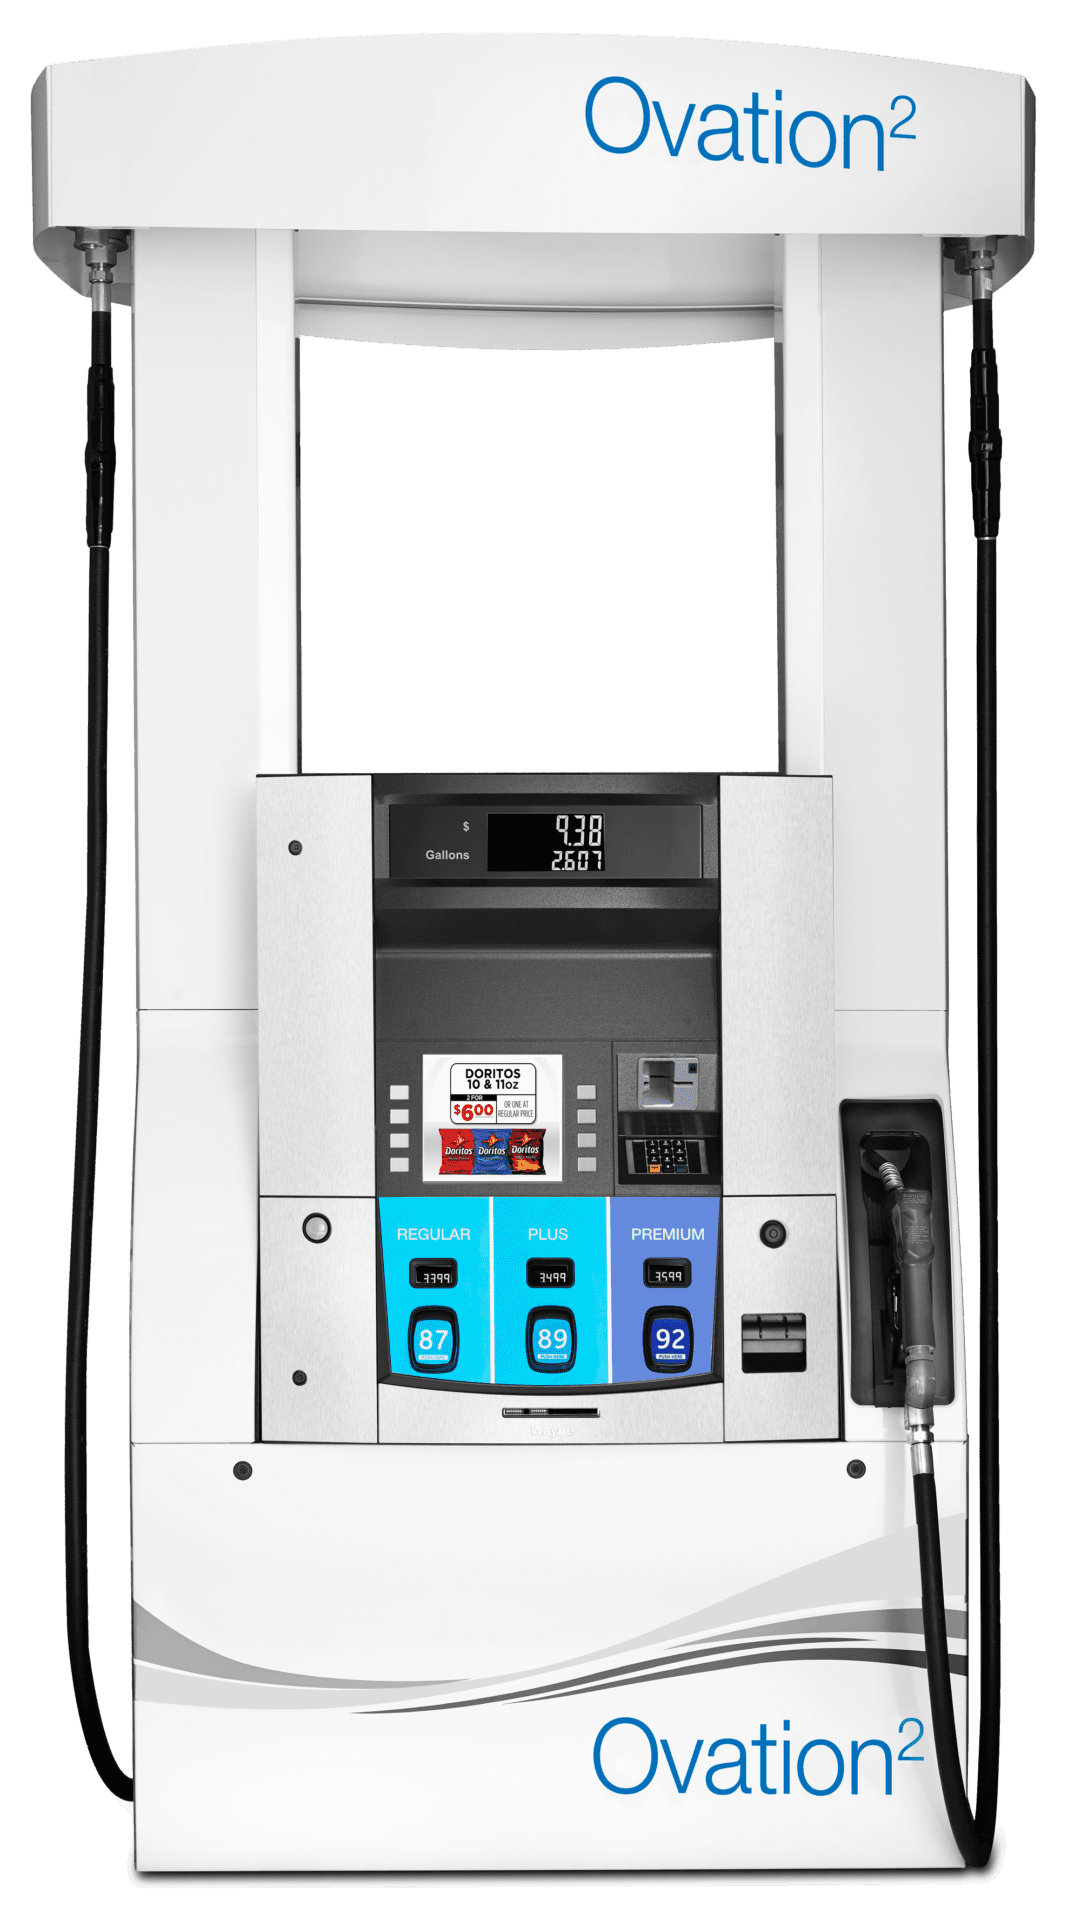 Wayne Ovation 2 Fuel Dispenser